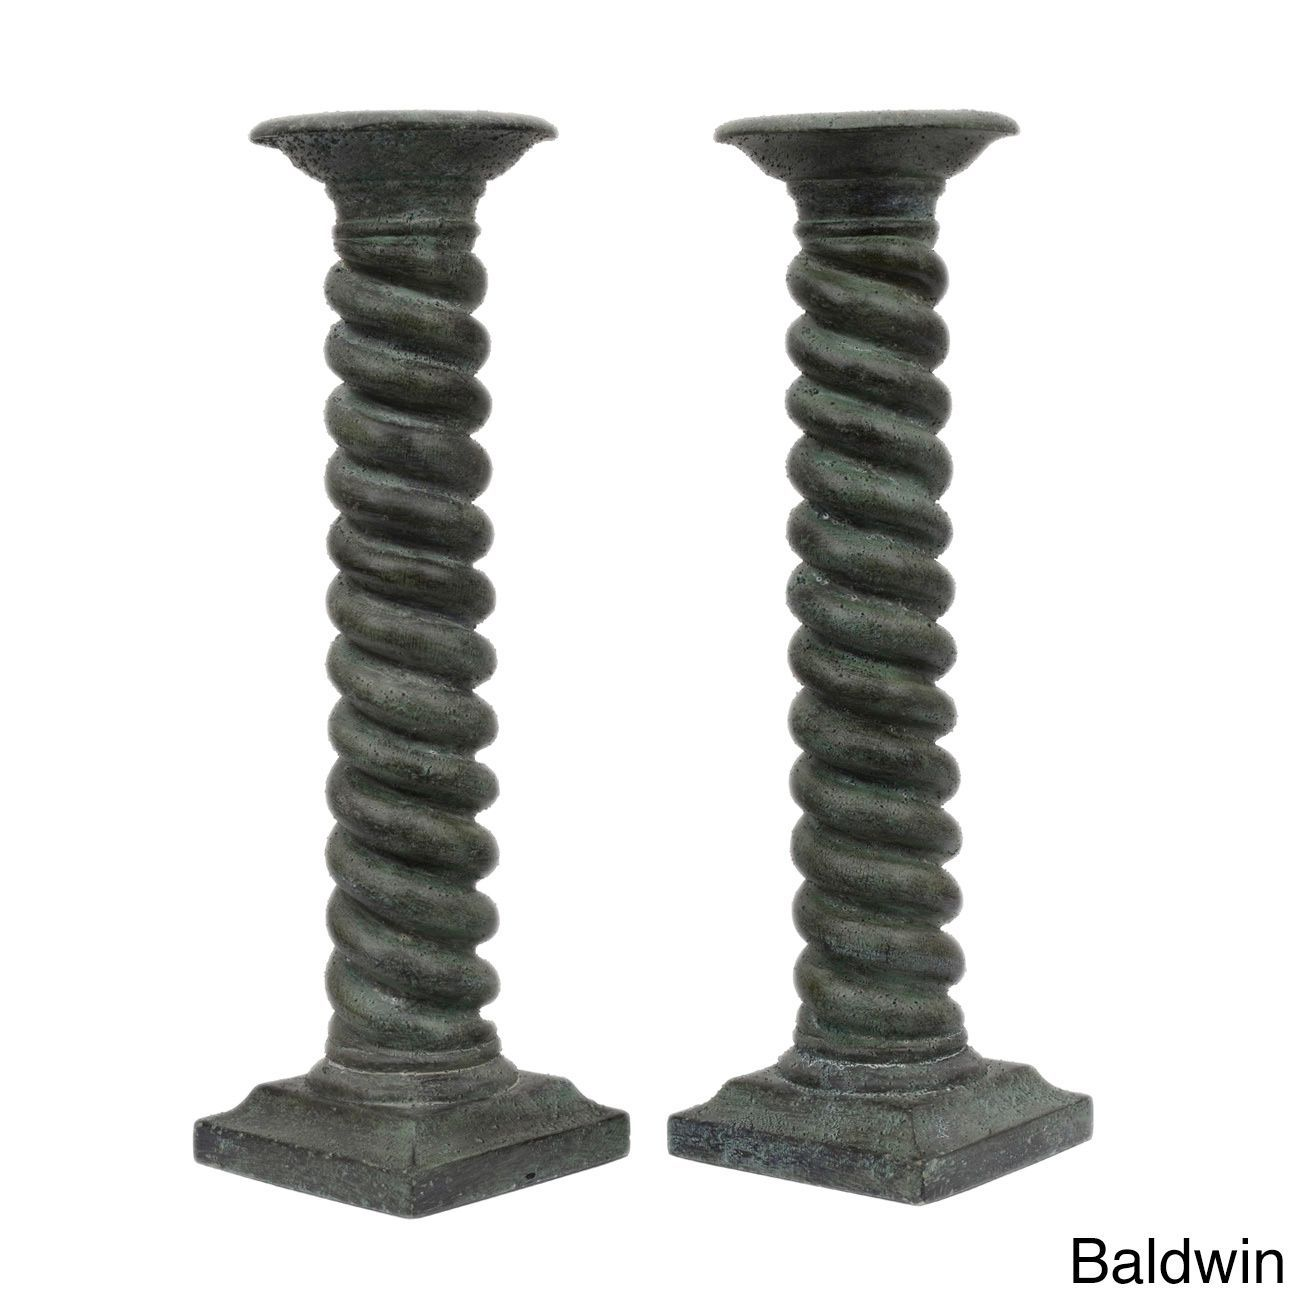 Available in grey, bronze or green, this set of two (2) beautiful candle holders is sure to effortlessly dress up the accents in your home decor.